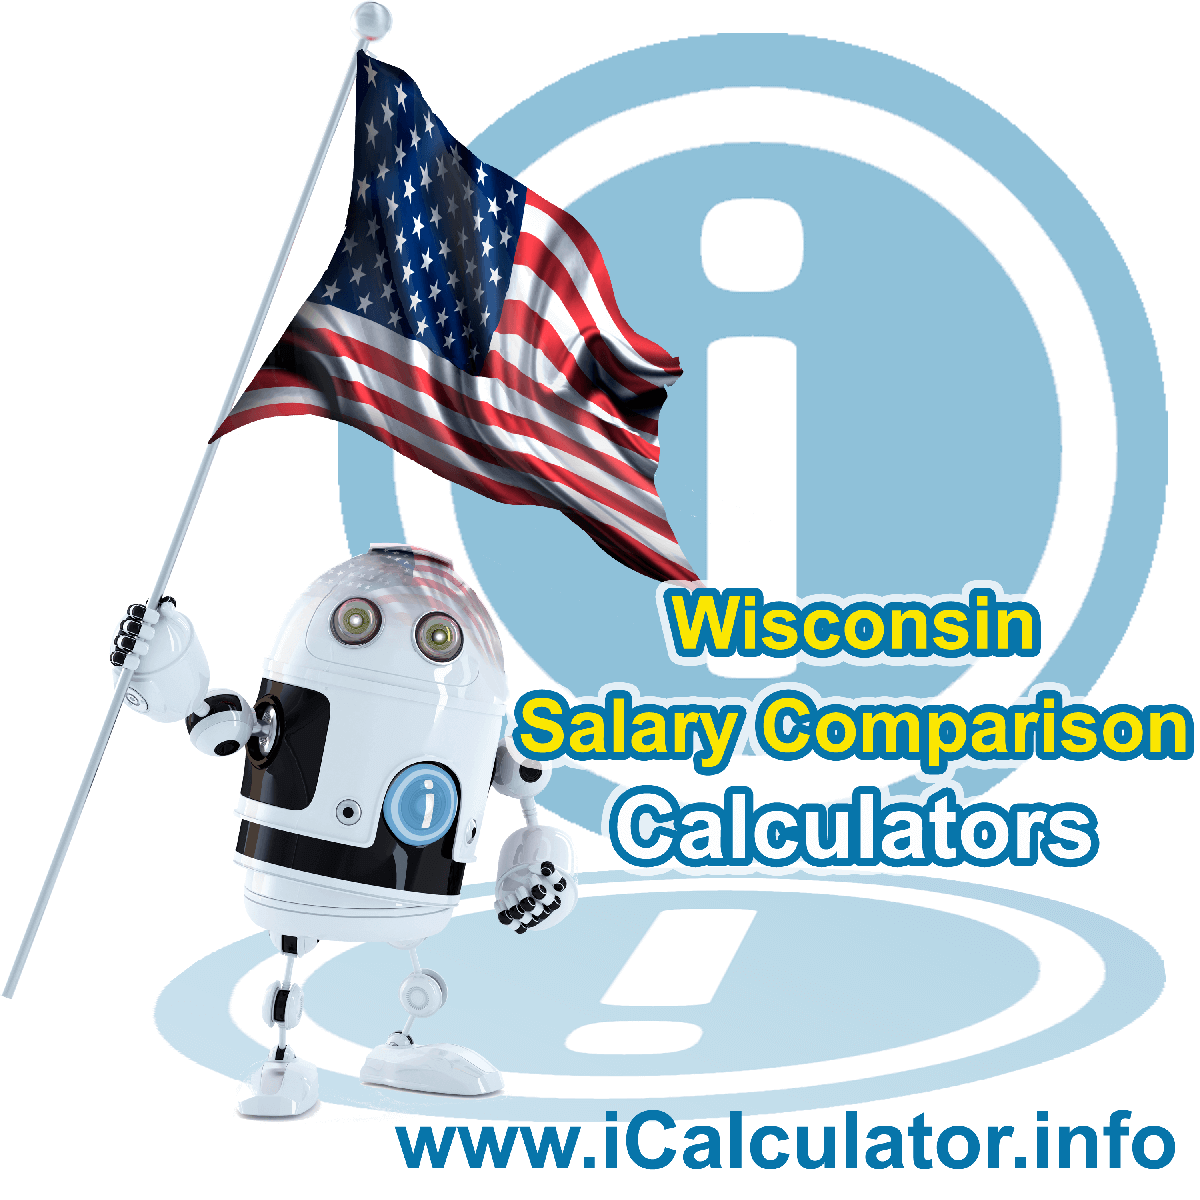 Wisconsin Salary Comparison Calculator 2021 | iCalculator™ | The Wisconsin Salary Comparison Calculator allows you to quickly calculate and compare upto 6 salaries in Wisconsin or between other states for the 2021 tax year and historical tax years. Its an excellent tool for jobseekers, pay raise comparison and comparison of salaries between different US States